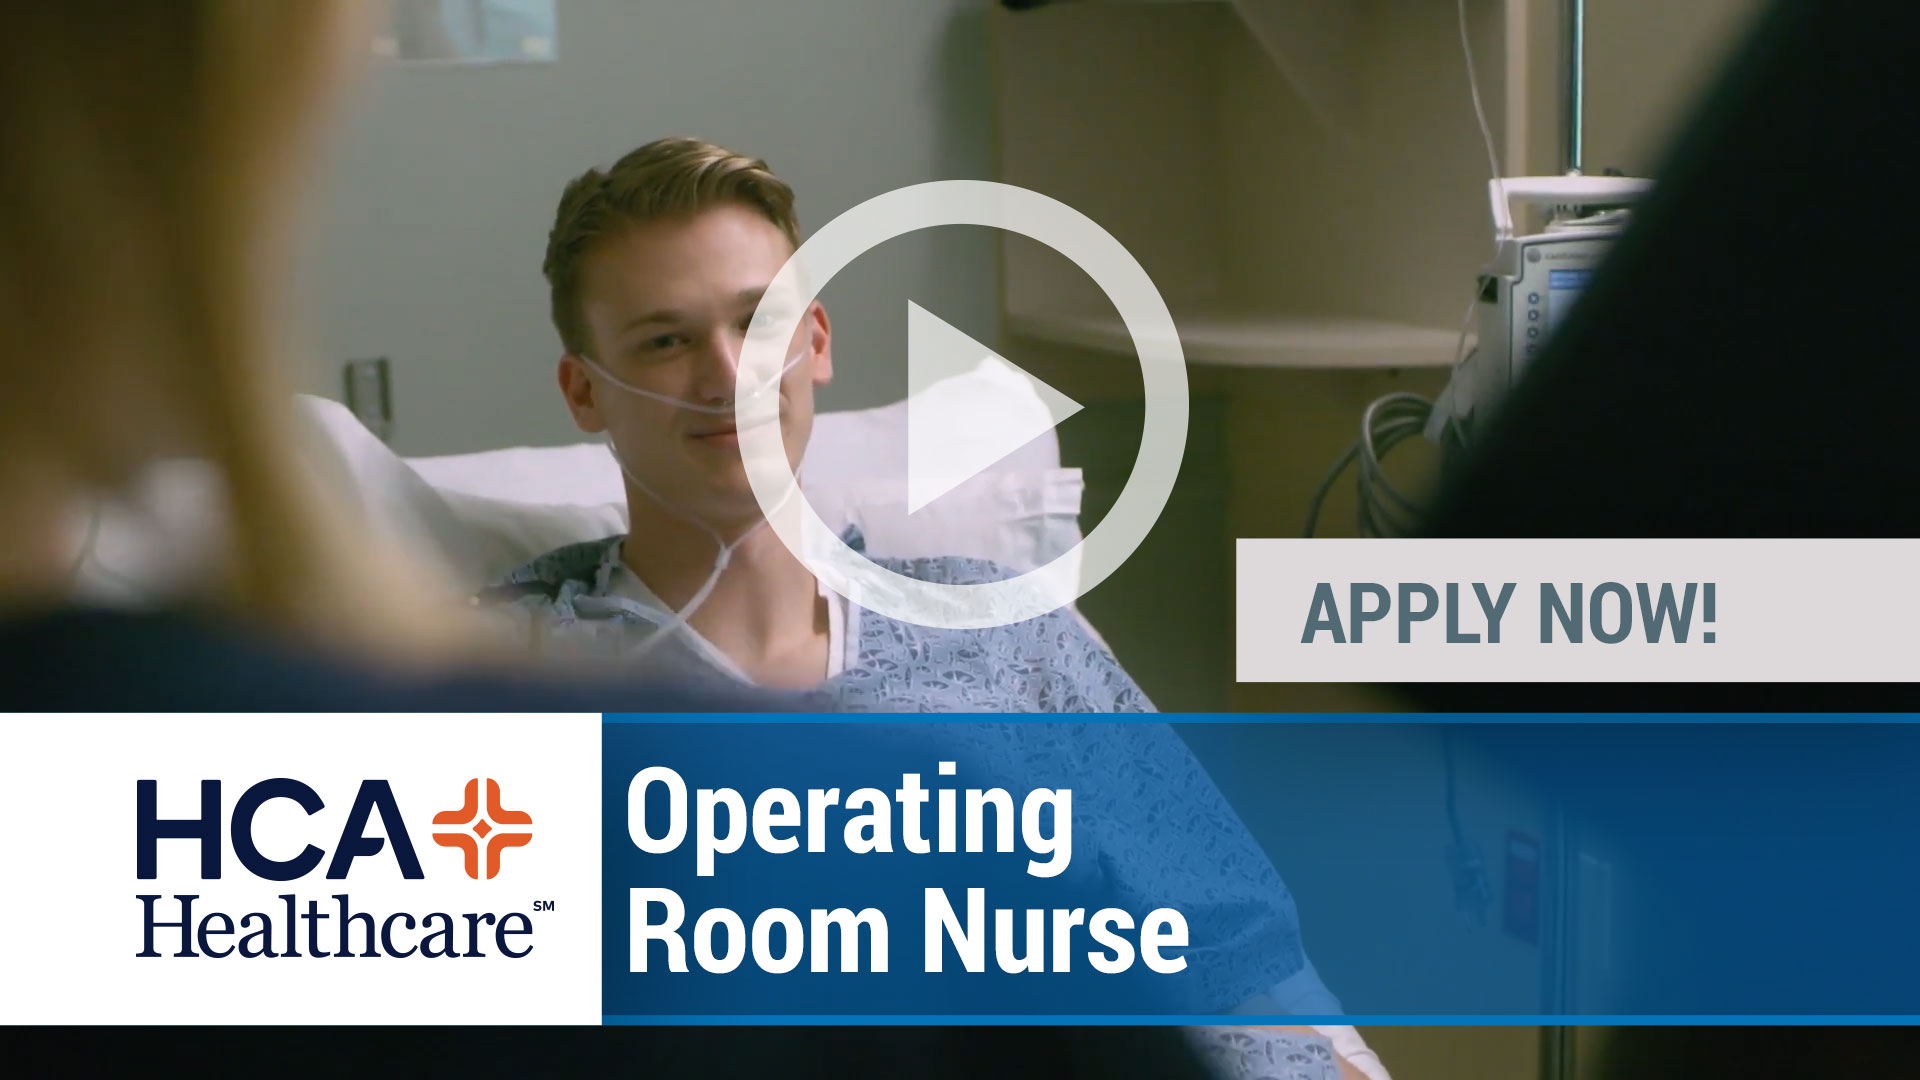 Watch our careers video for available job opening Operating Room Nurse in Riverside, California